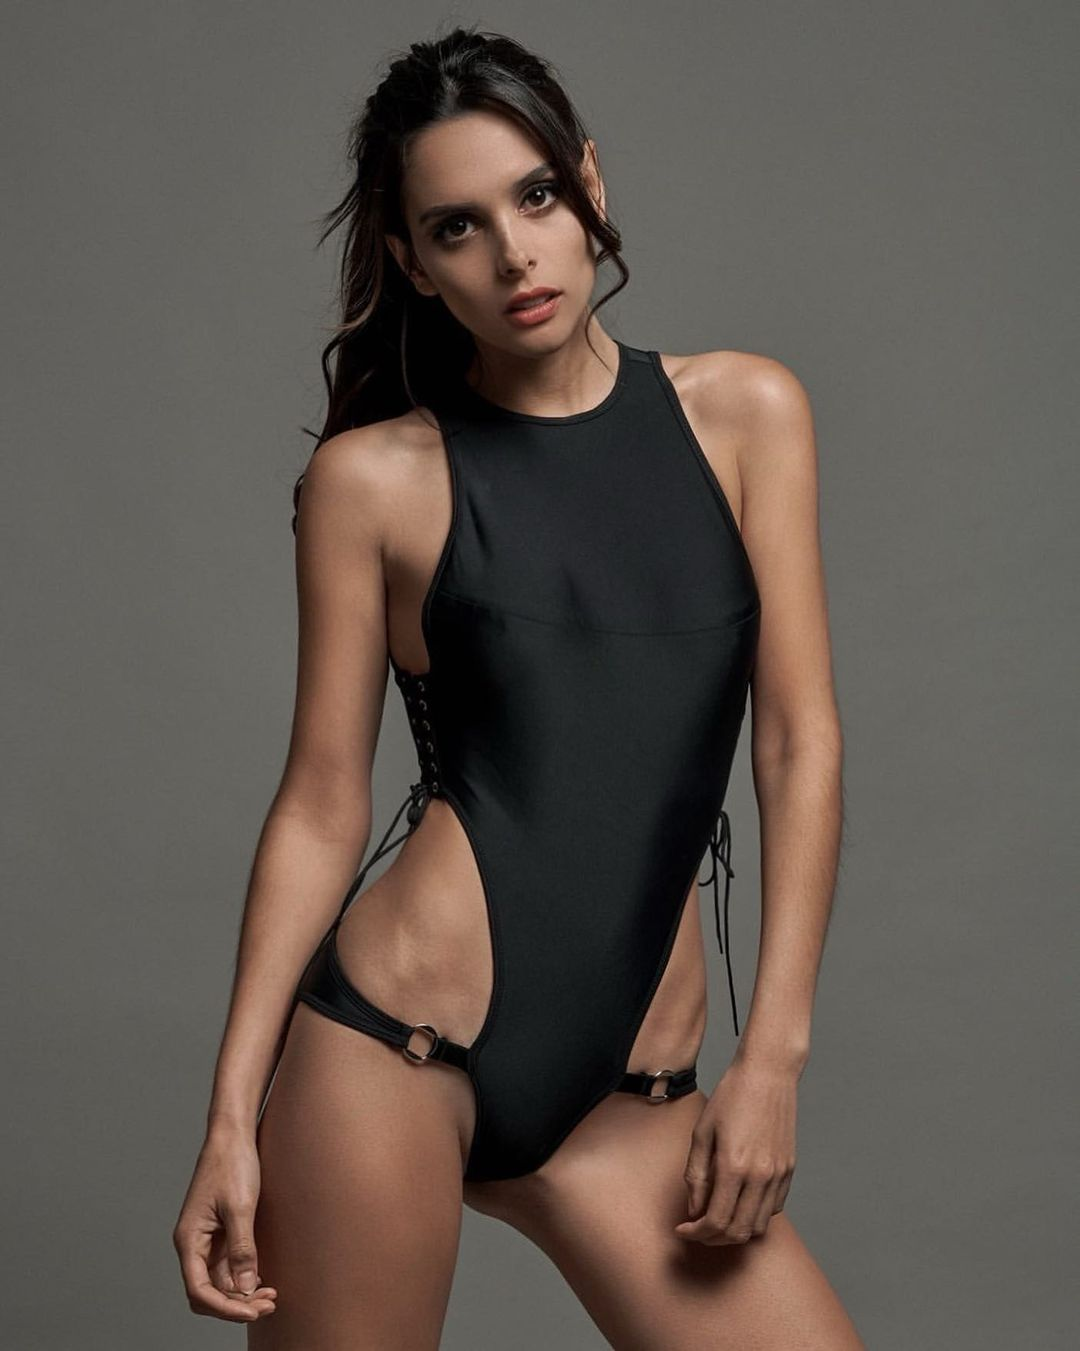 Mexicos fiery mannequin Lluvia Carrillo 4